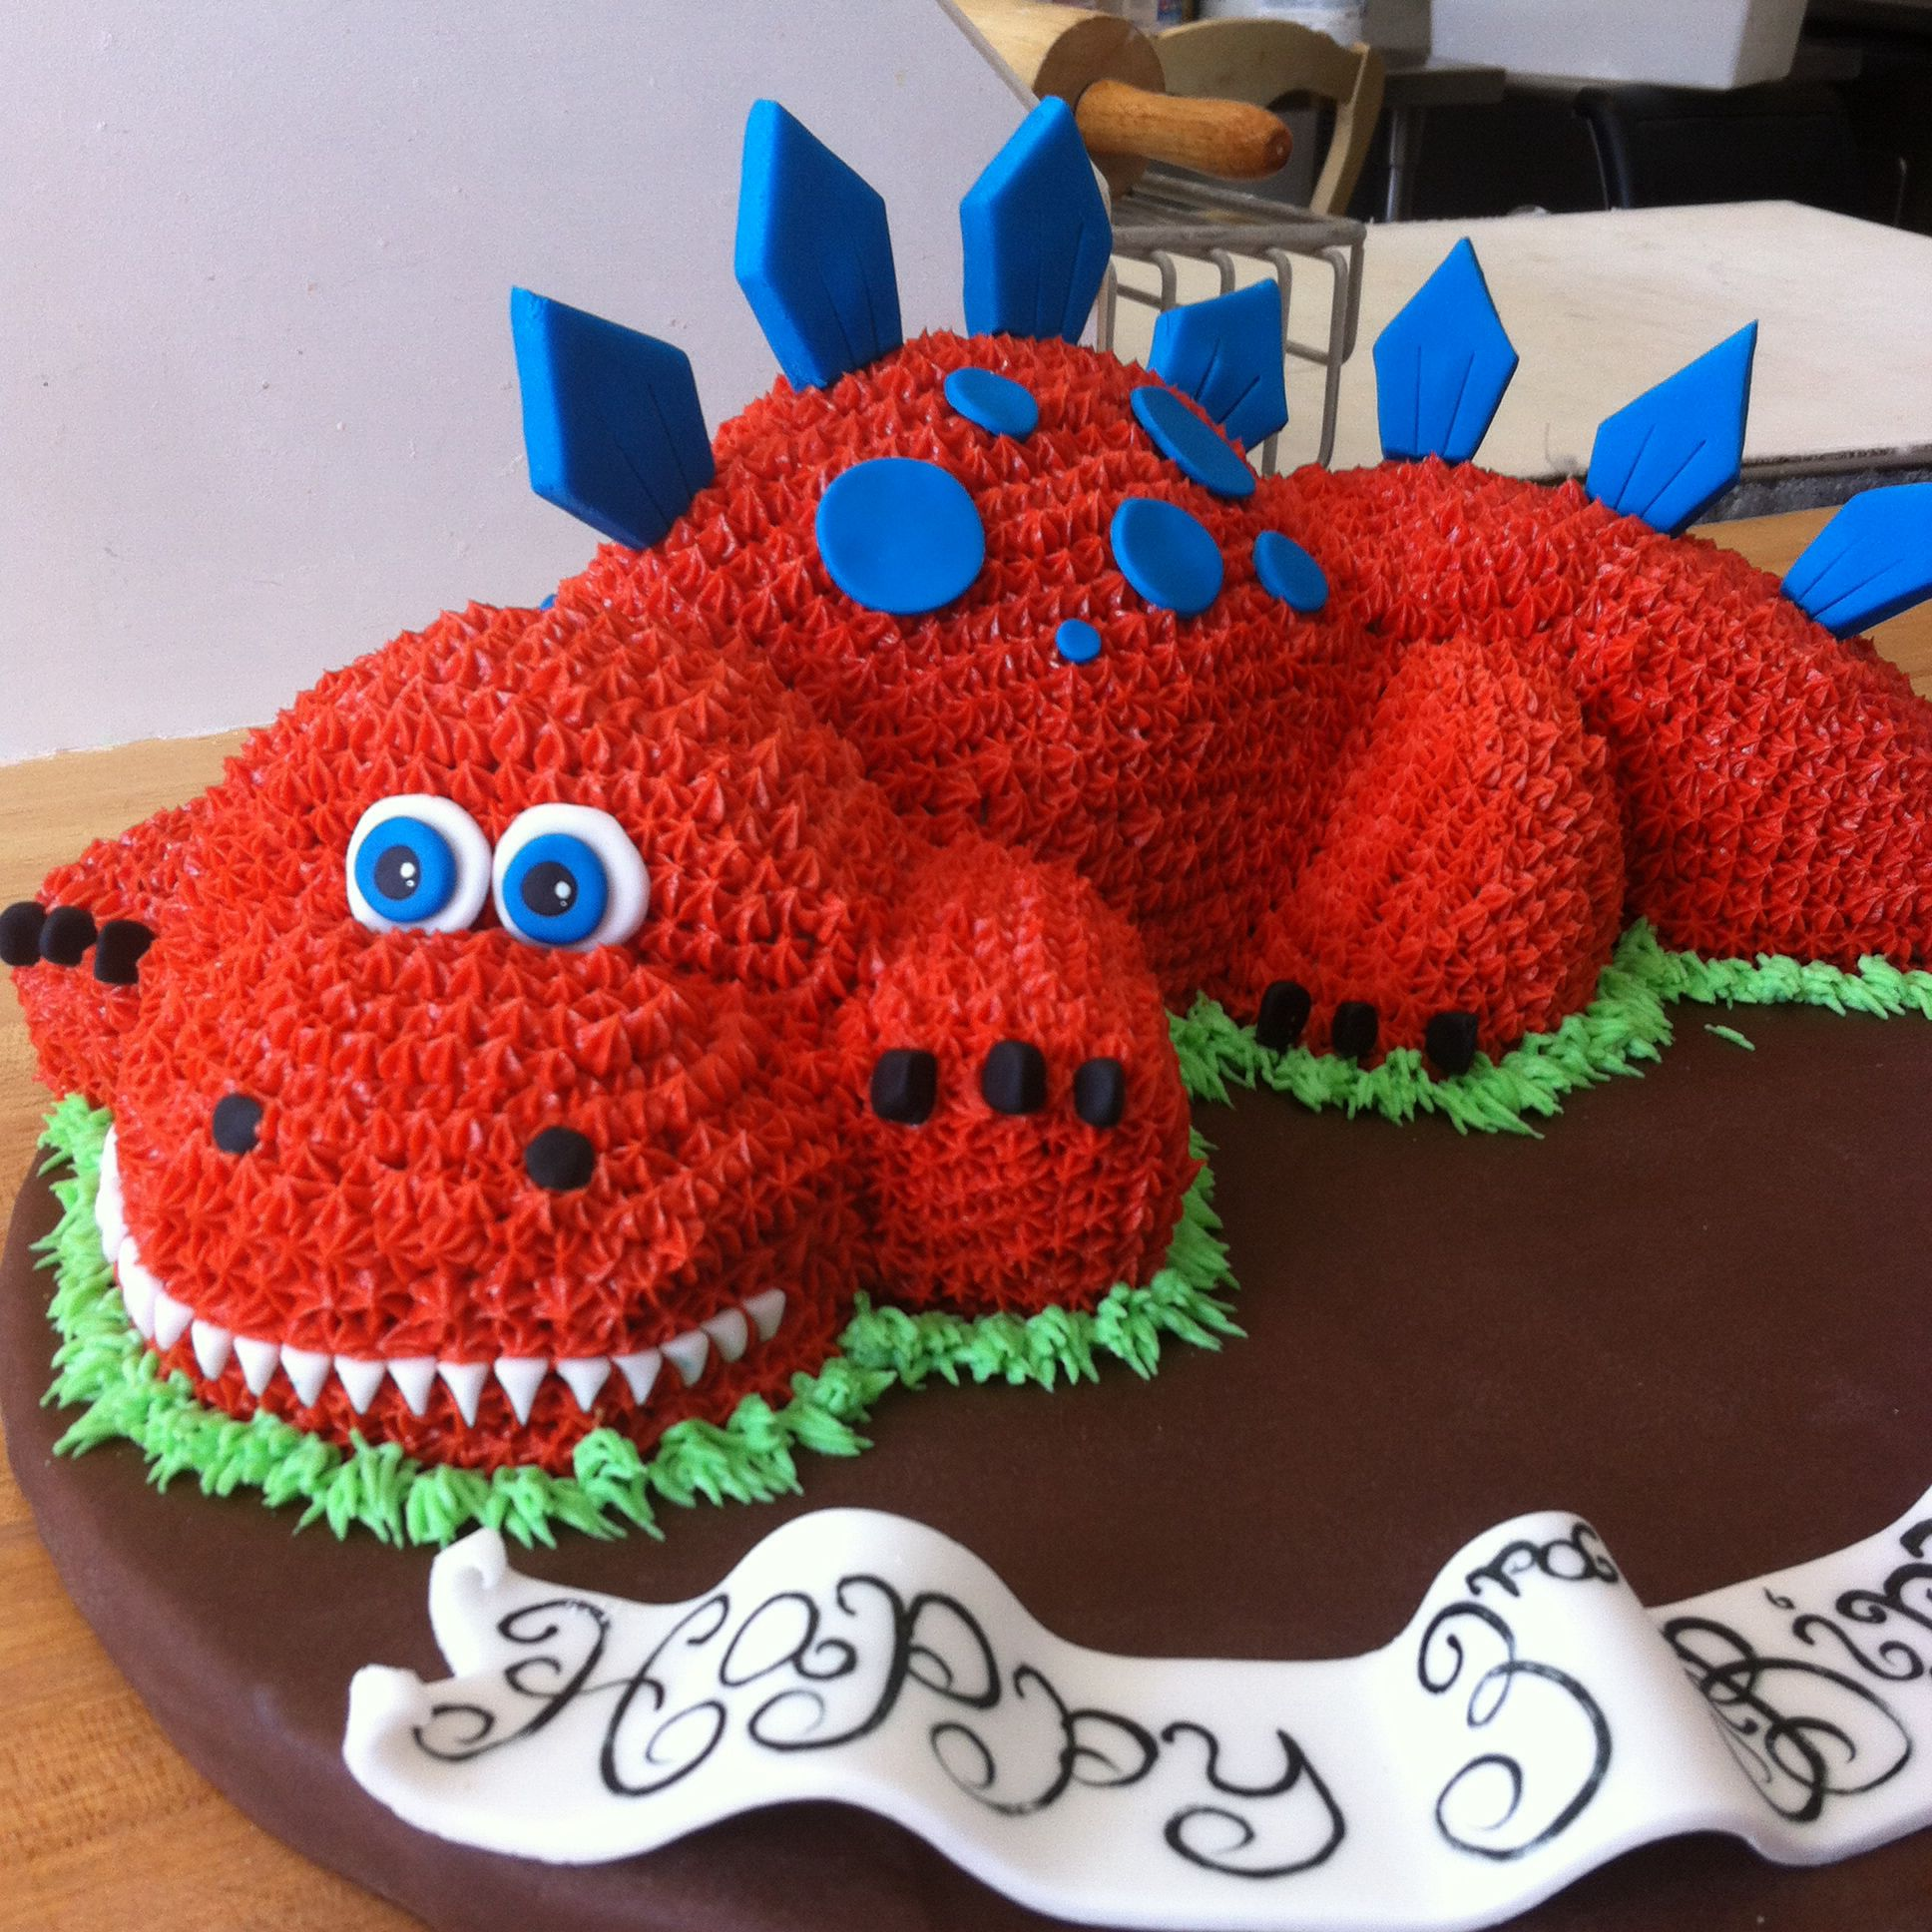 Dinosaur birthday cake by theaccidentalbaker more pics on Instagram